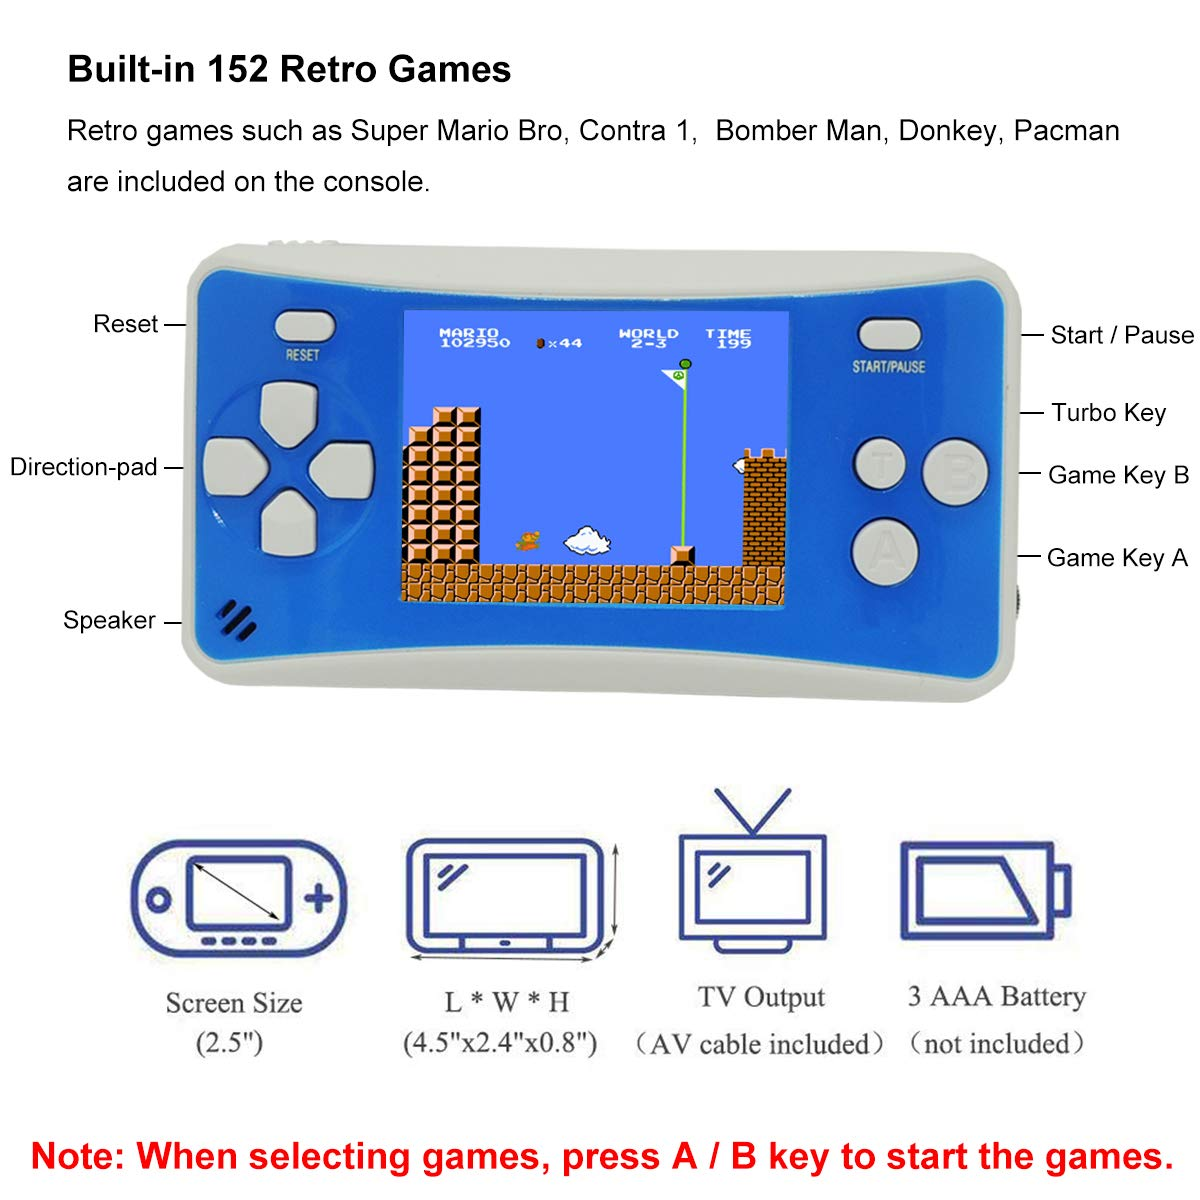 Ideal Christmas or Birthday Gift/Present Portable 2.5 Inch Gameboy Handheld Retro Games Consoles with 152 NES Old-school Games Support TV AV Video Output for Kids Men Women Boys Girls Friend